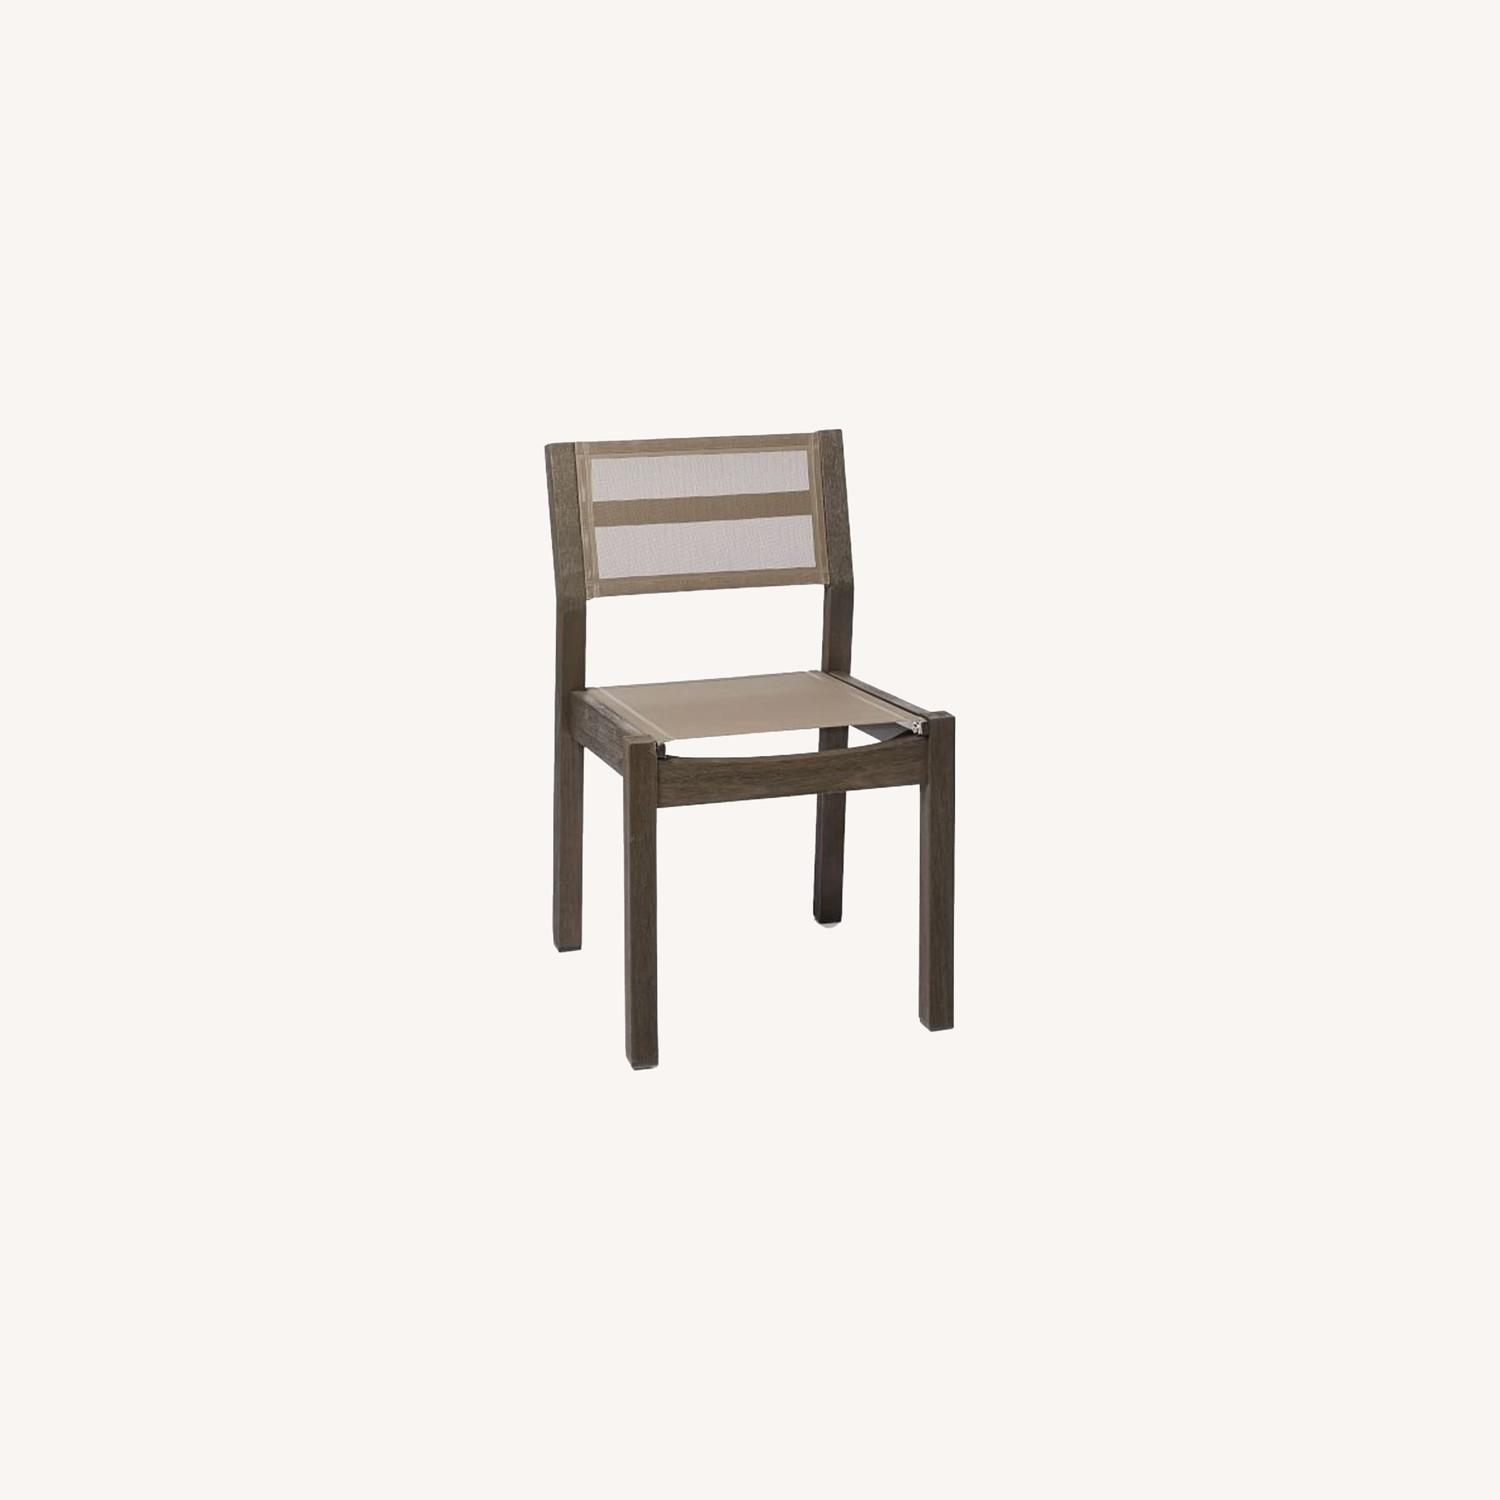 West Elm Portside Textiline Chair, Weathered Cafe - image-0